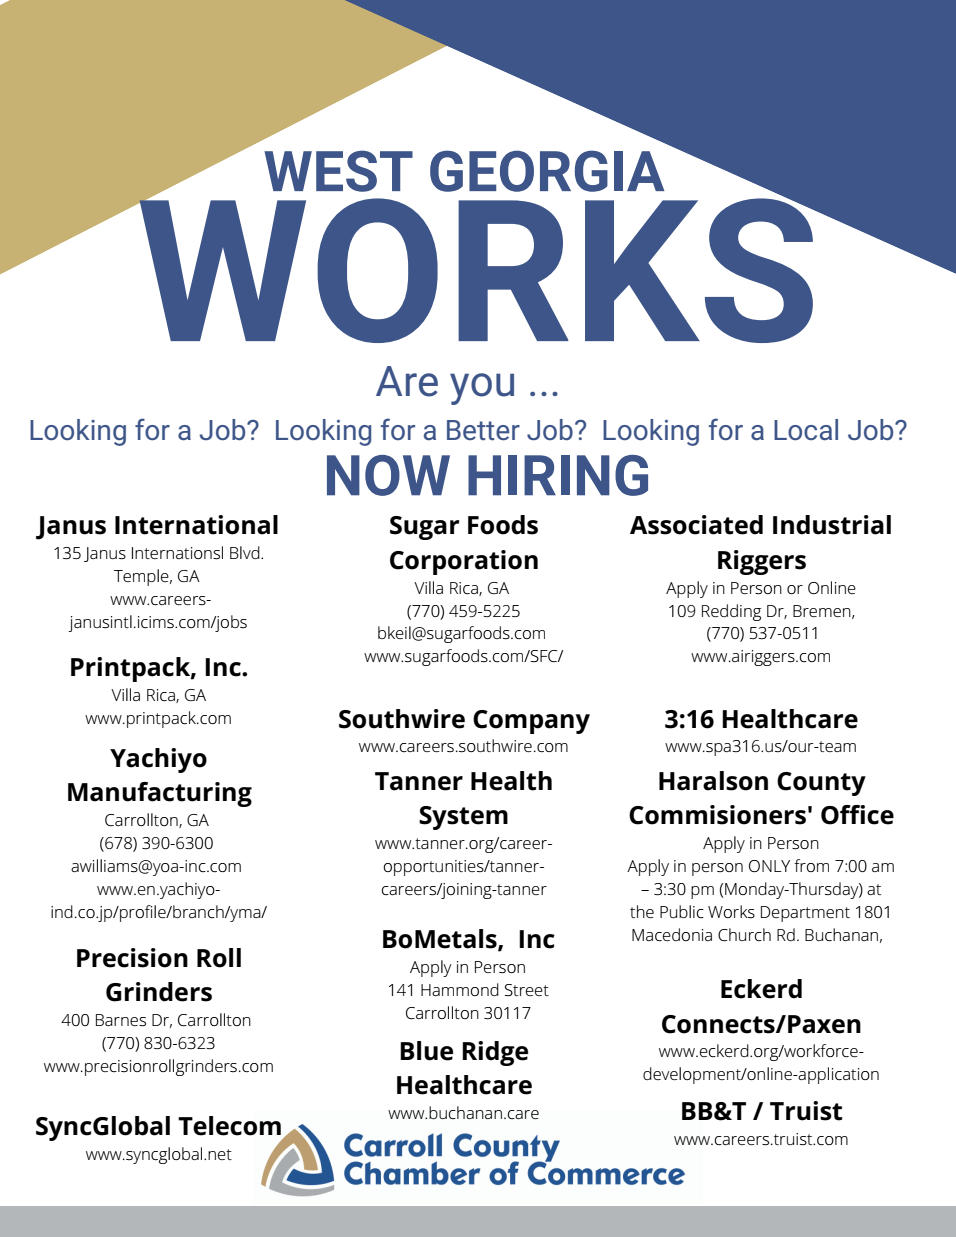 West Georgia Works